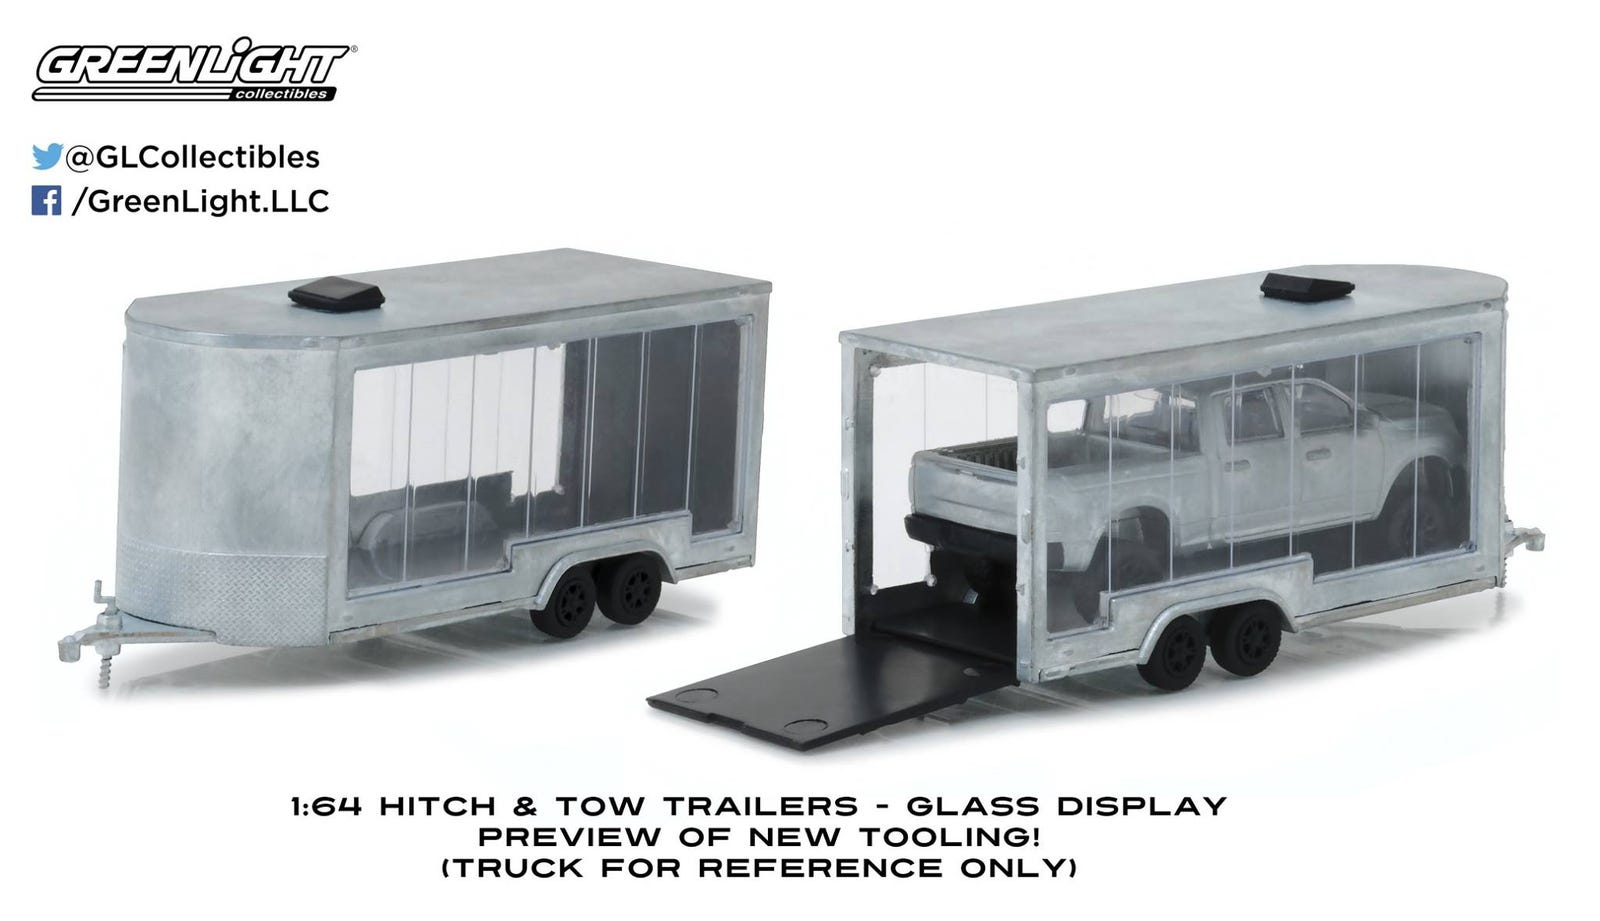 Glass Display Trailer Tooling Preview